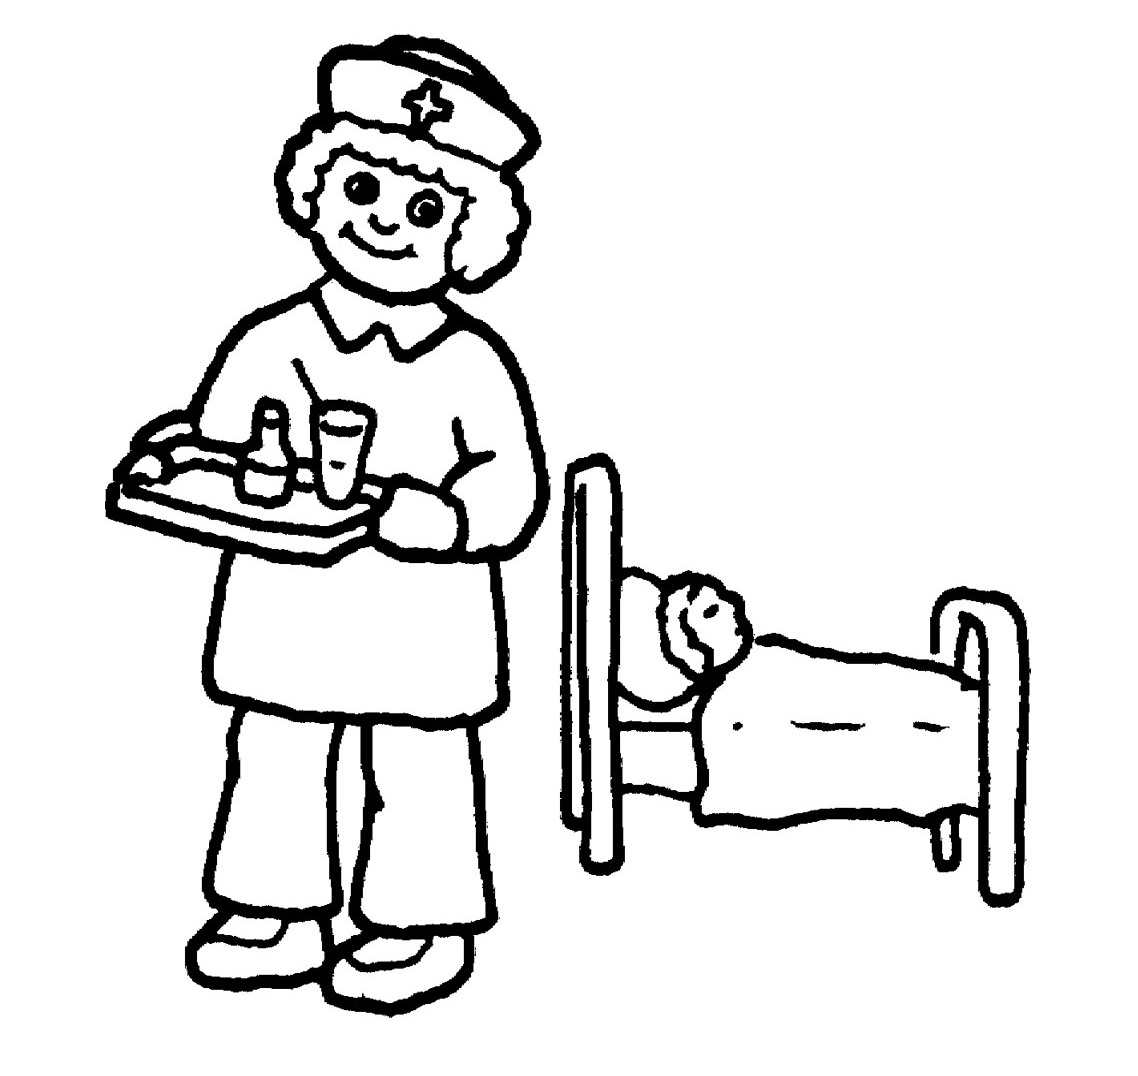 Free Pictures Of Nurses For Kids Download Free Clip Art Free Clip Art On Clipart Library